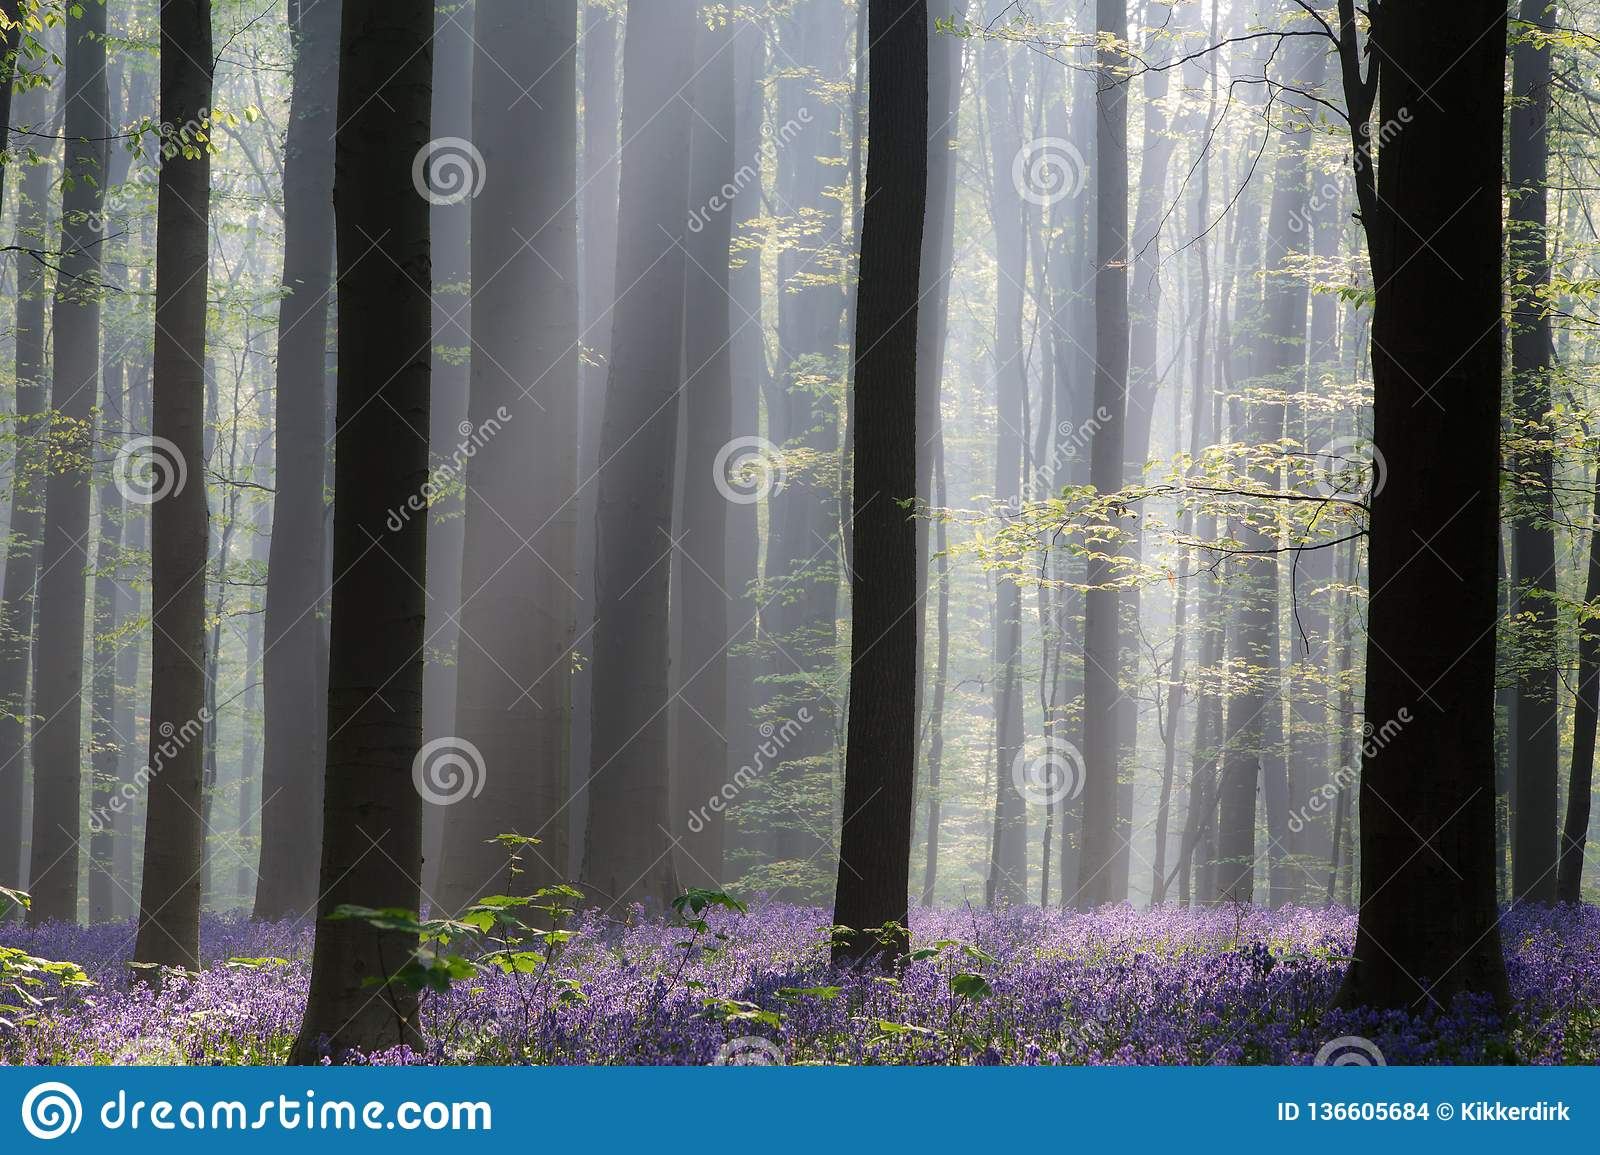 Early morning first sun light in a spring forest